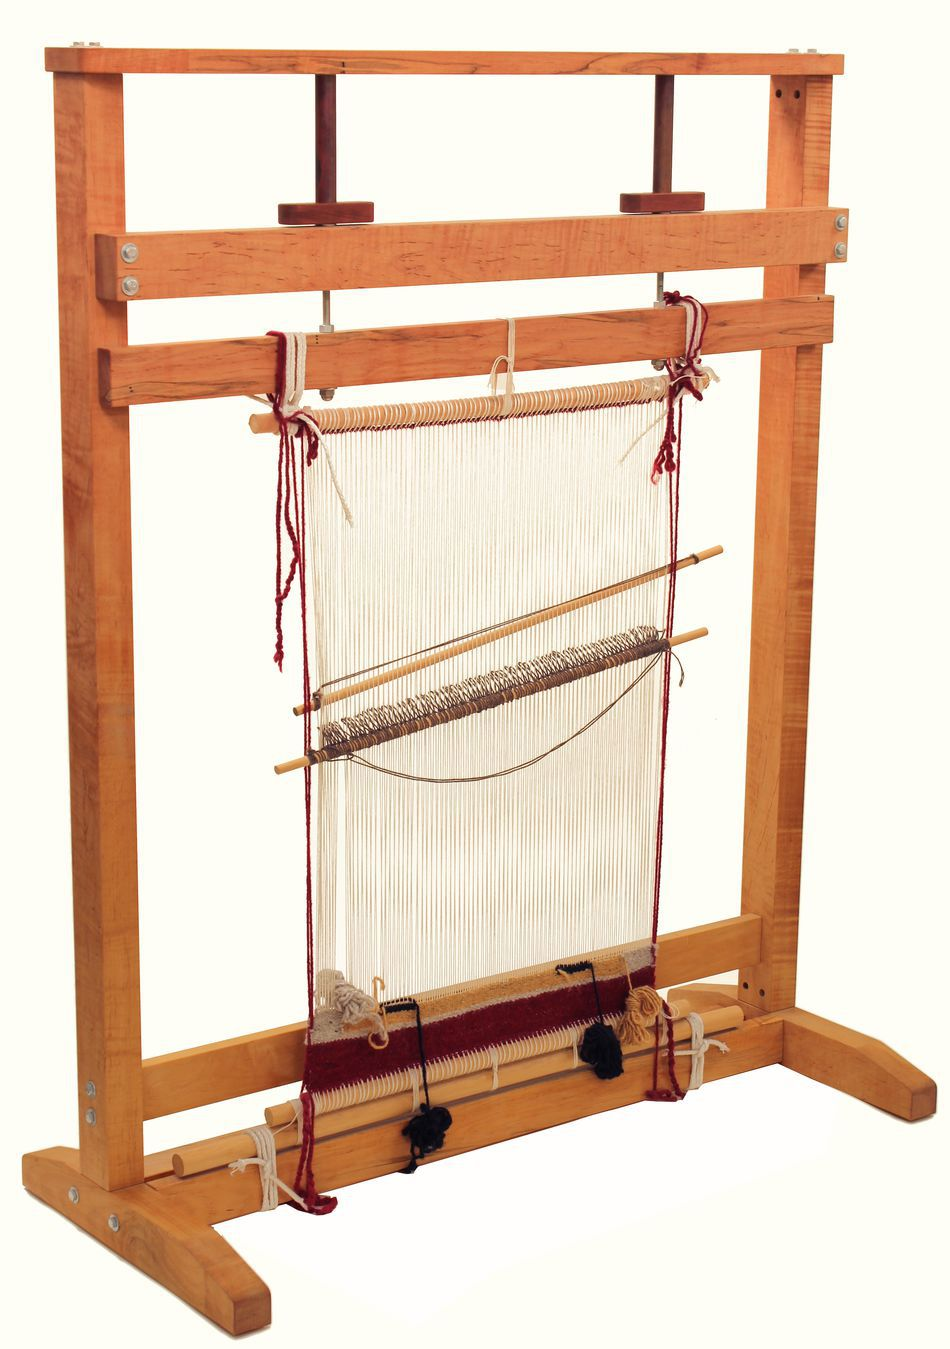 navajo style 60 loom by dovetail weaving equipment halcyon yarn